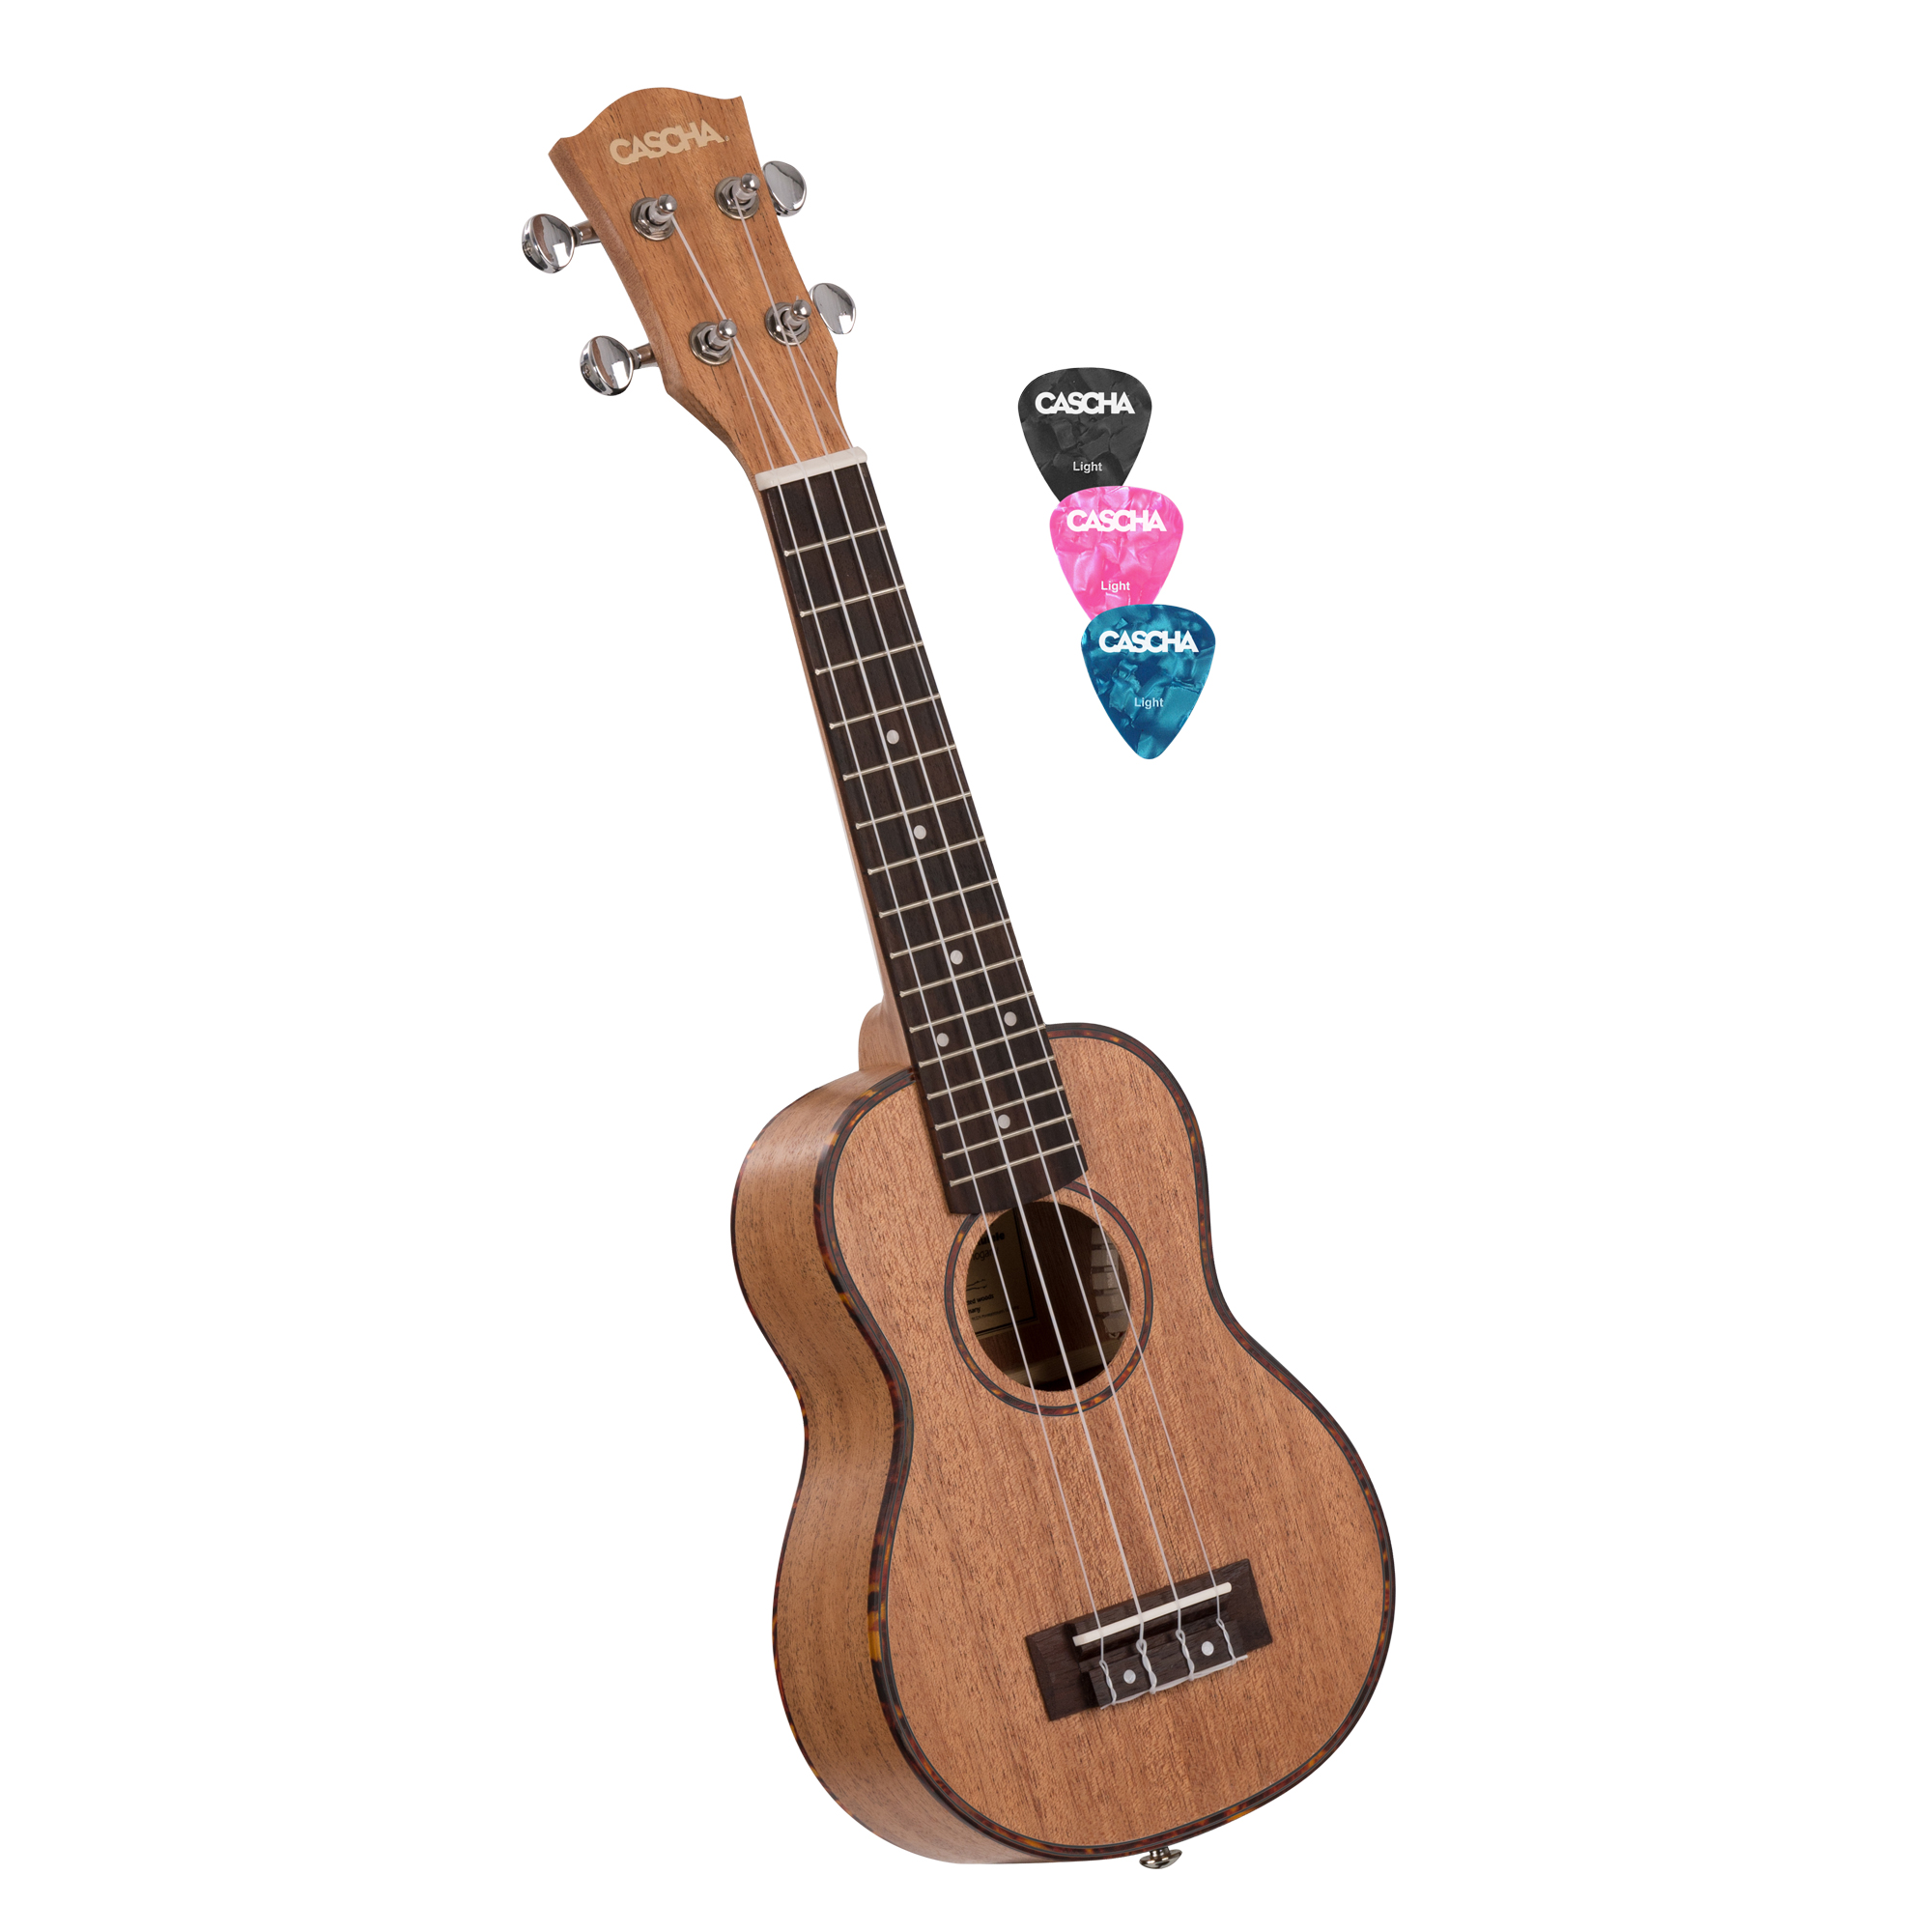 Let's Play Ukulele Einsteiger Set Sopran Bilder 2